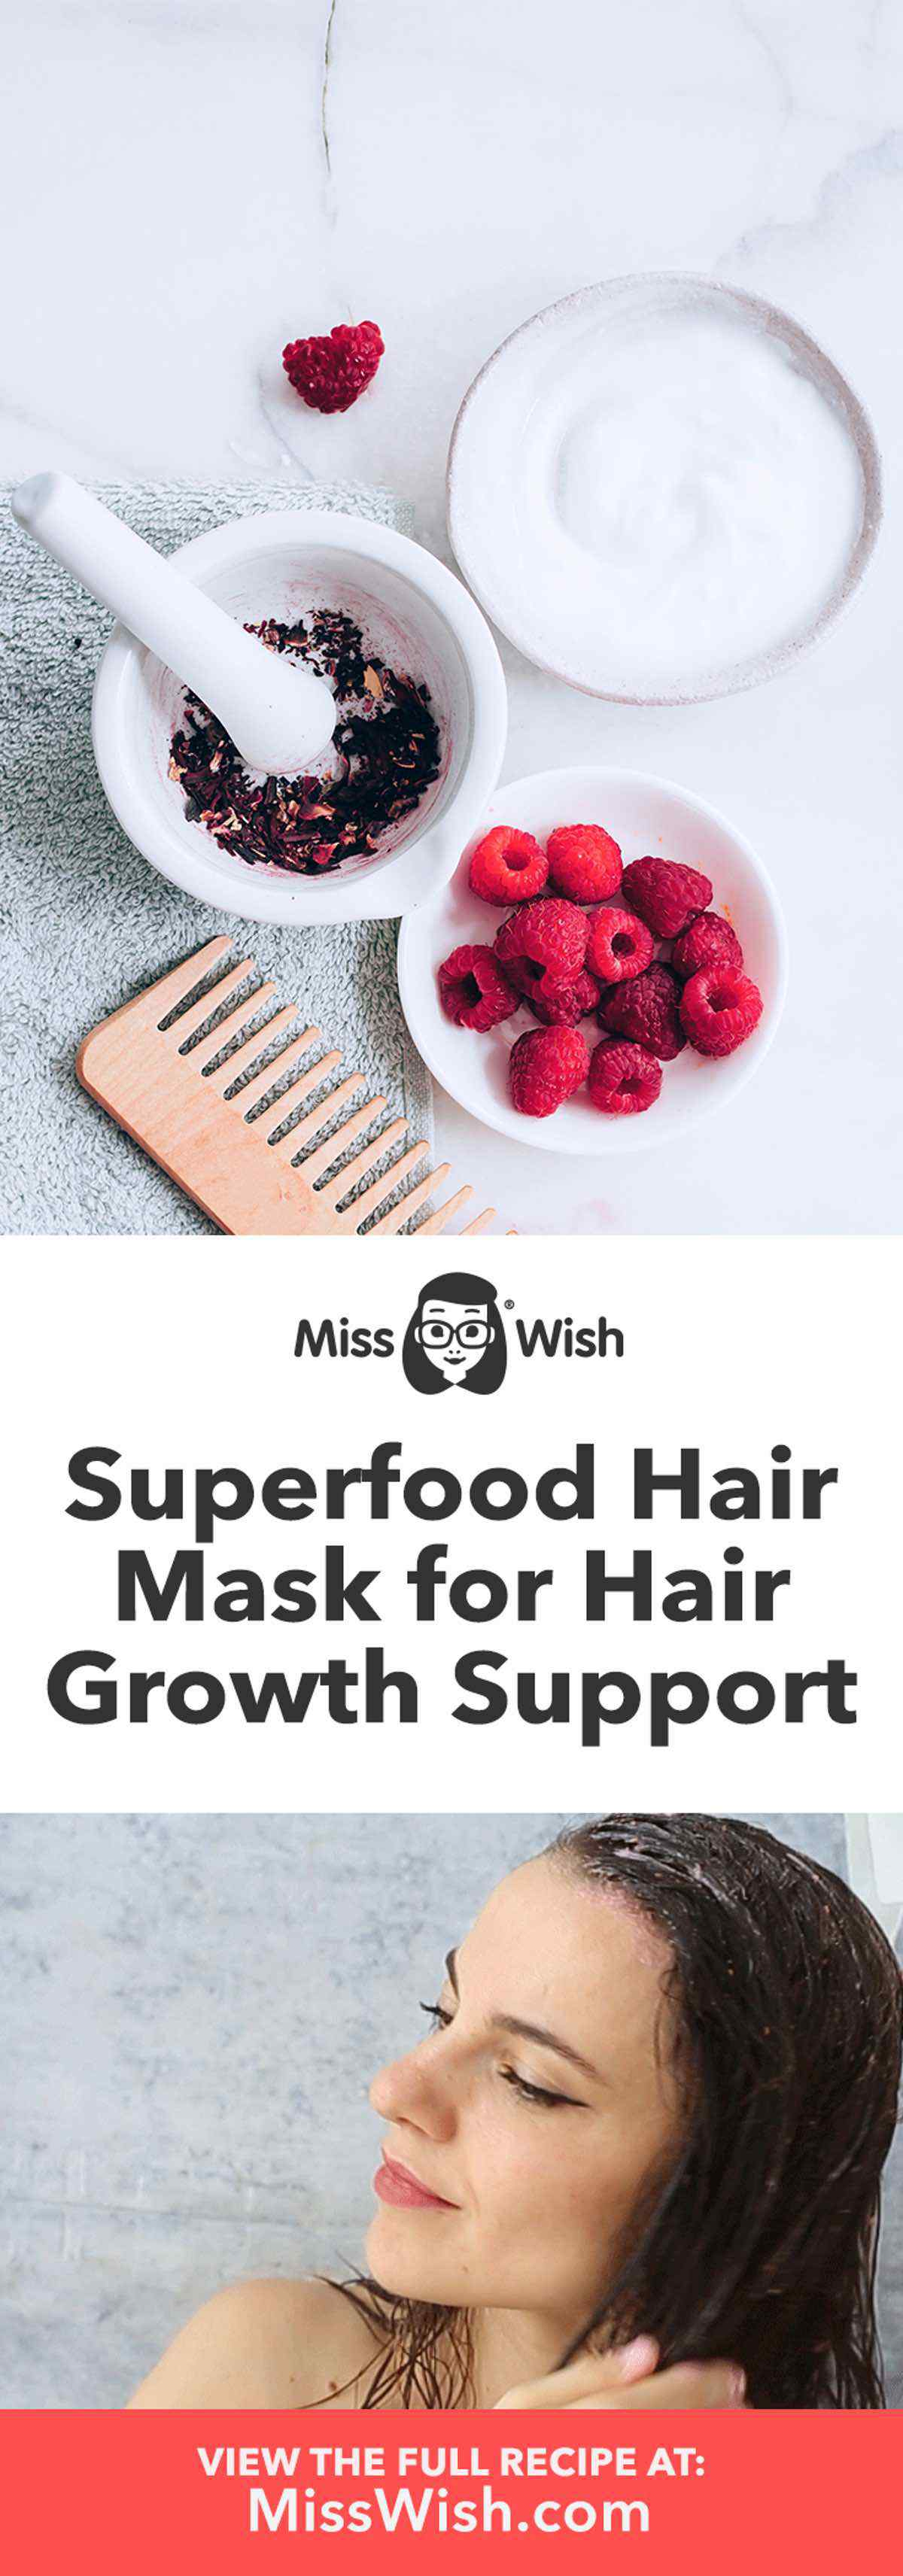 DIY Superfood Hair Mask for Hair Growth Support